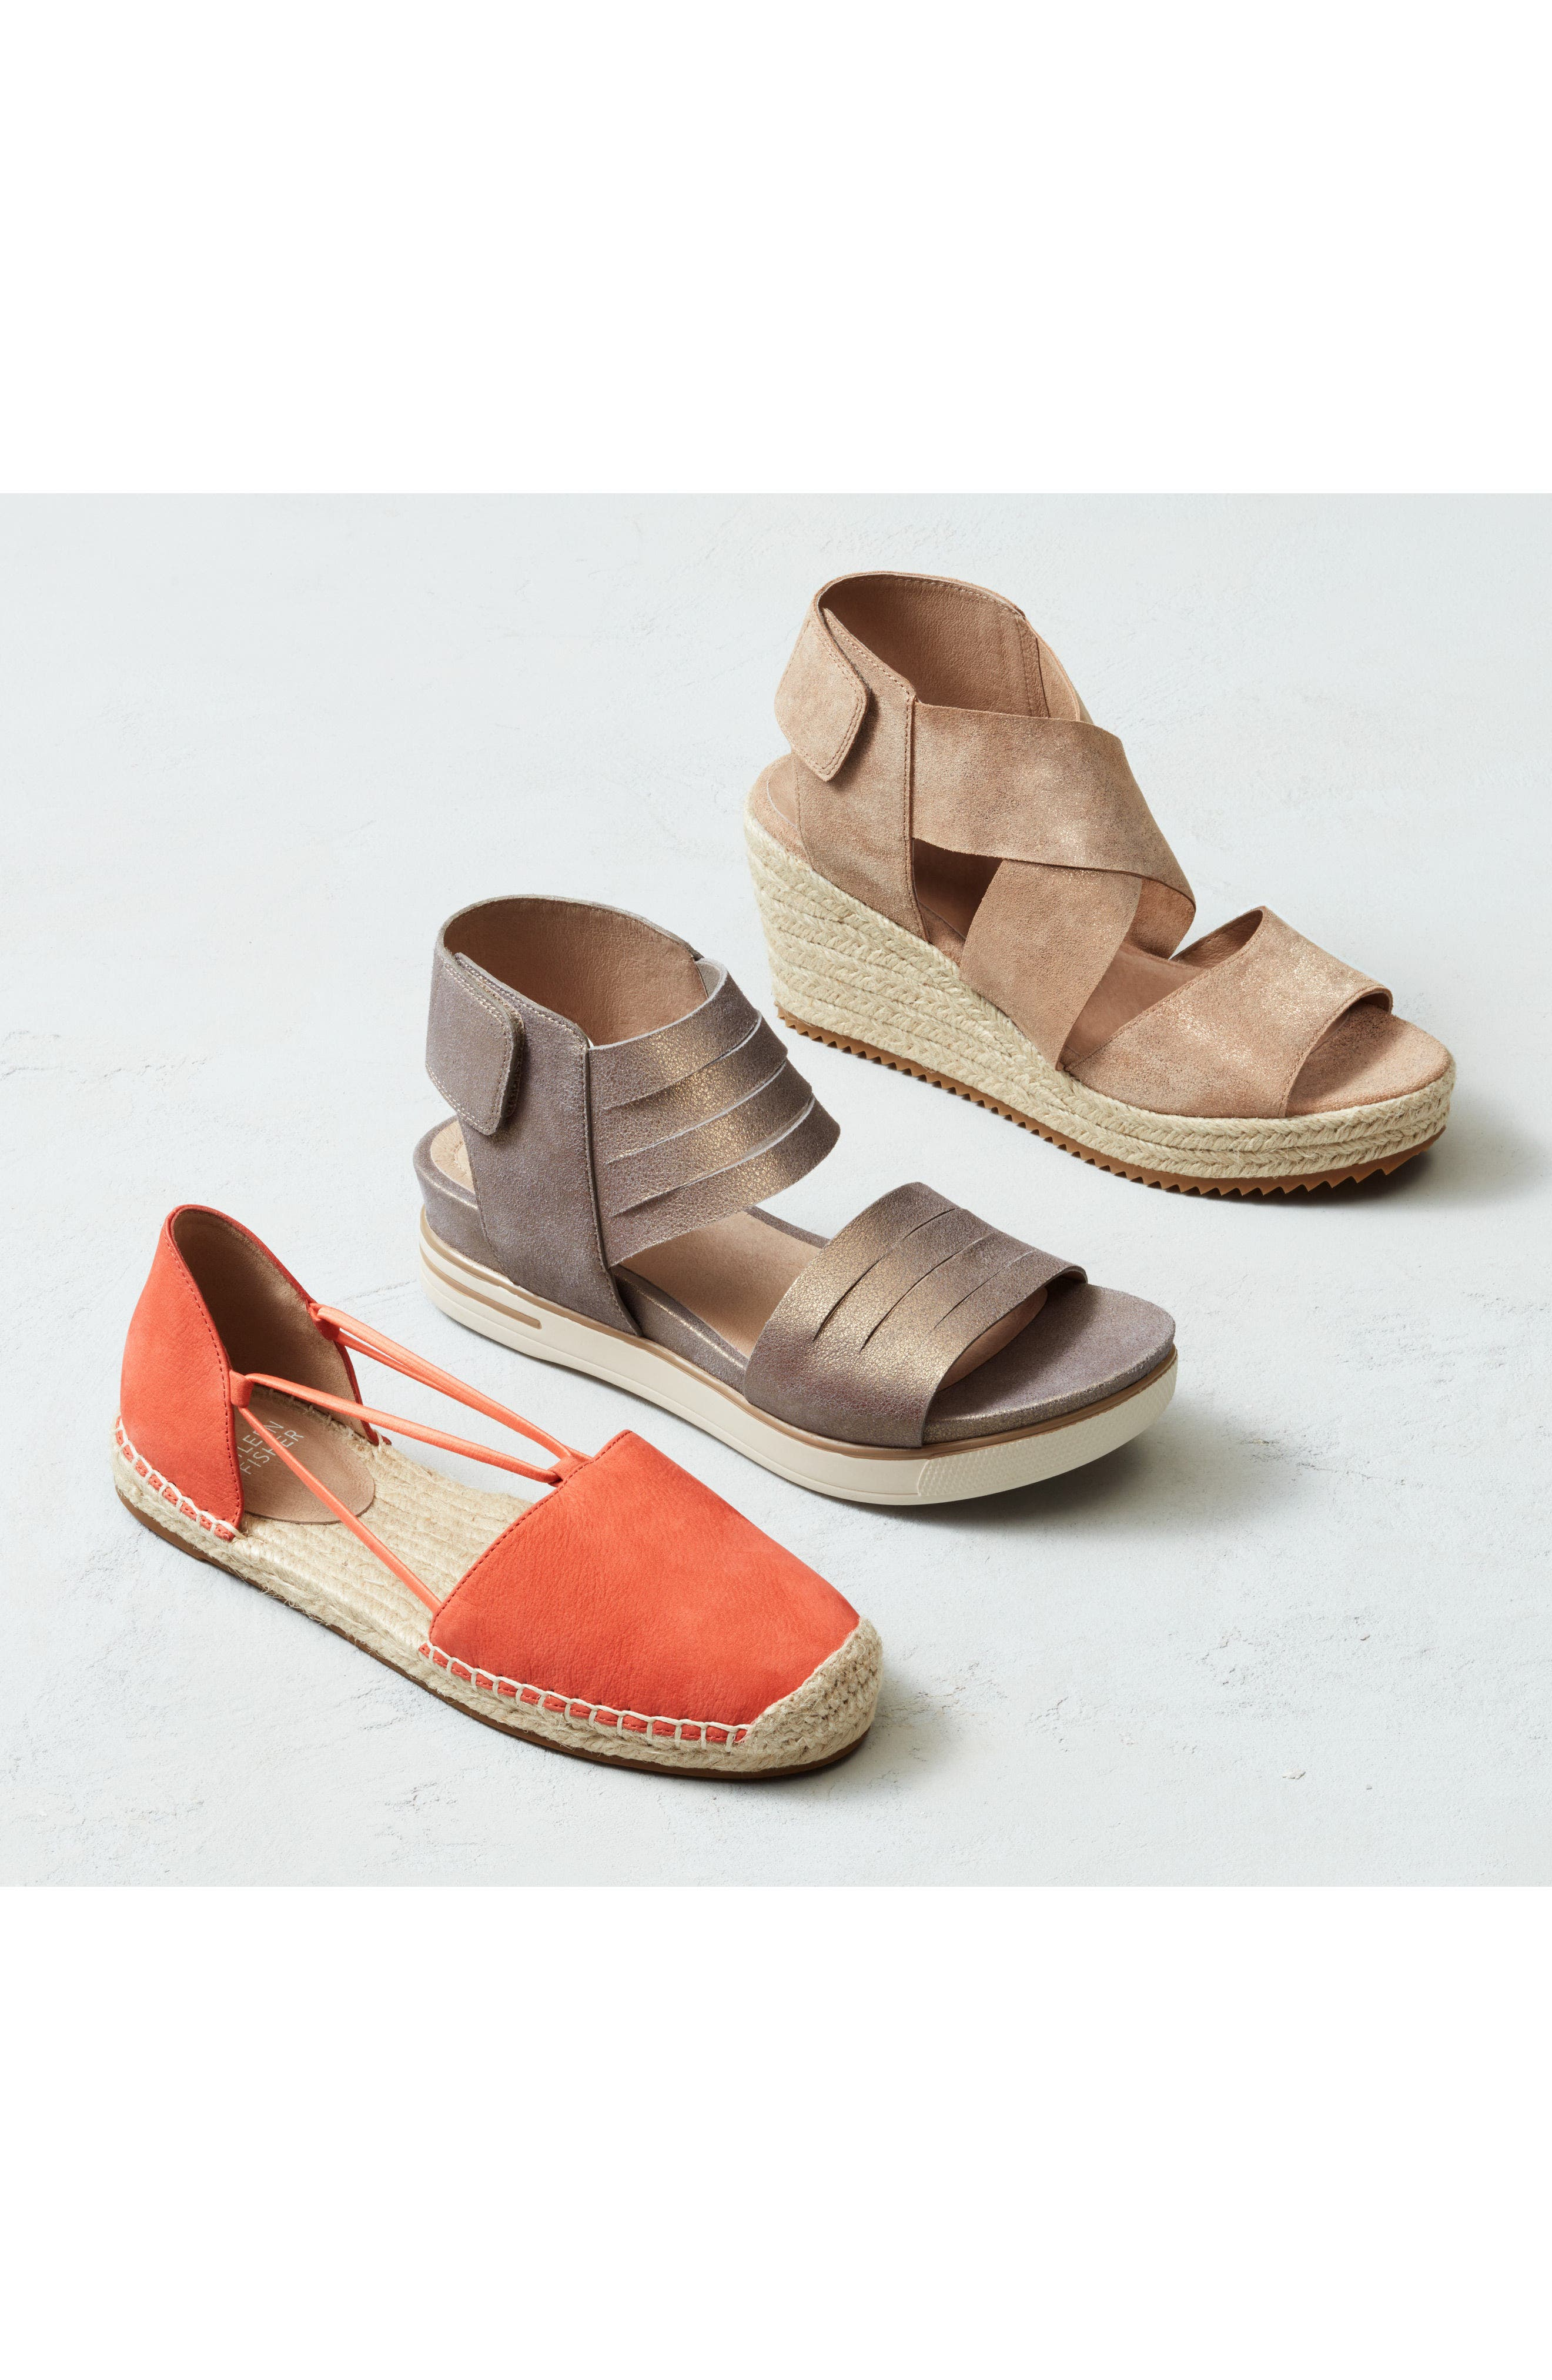 EILEEN FISHER, 'Willow' Espadrille Wedge Sandal, Alternate thumbnail 9, color, BRONZE/ BRONZE LEATHER